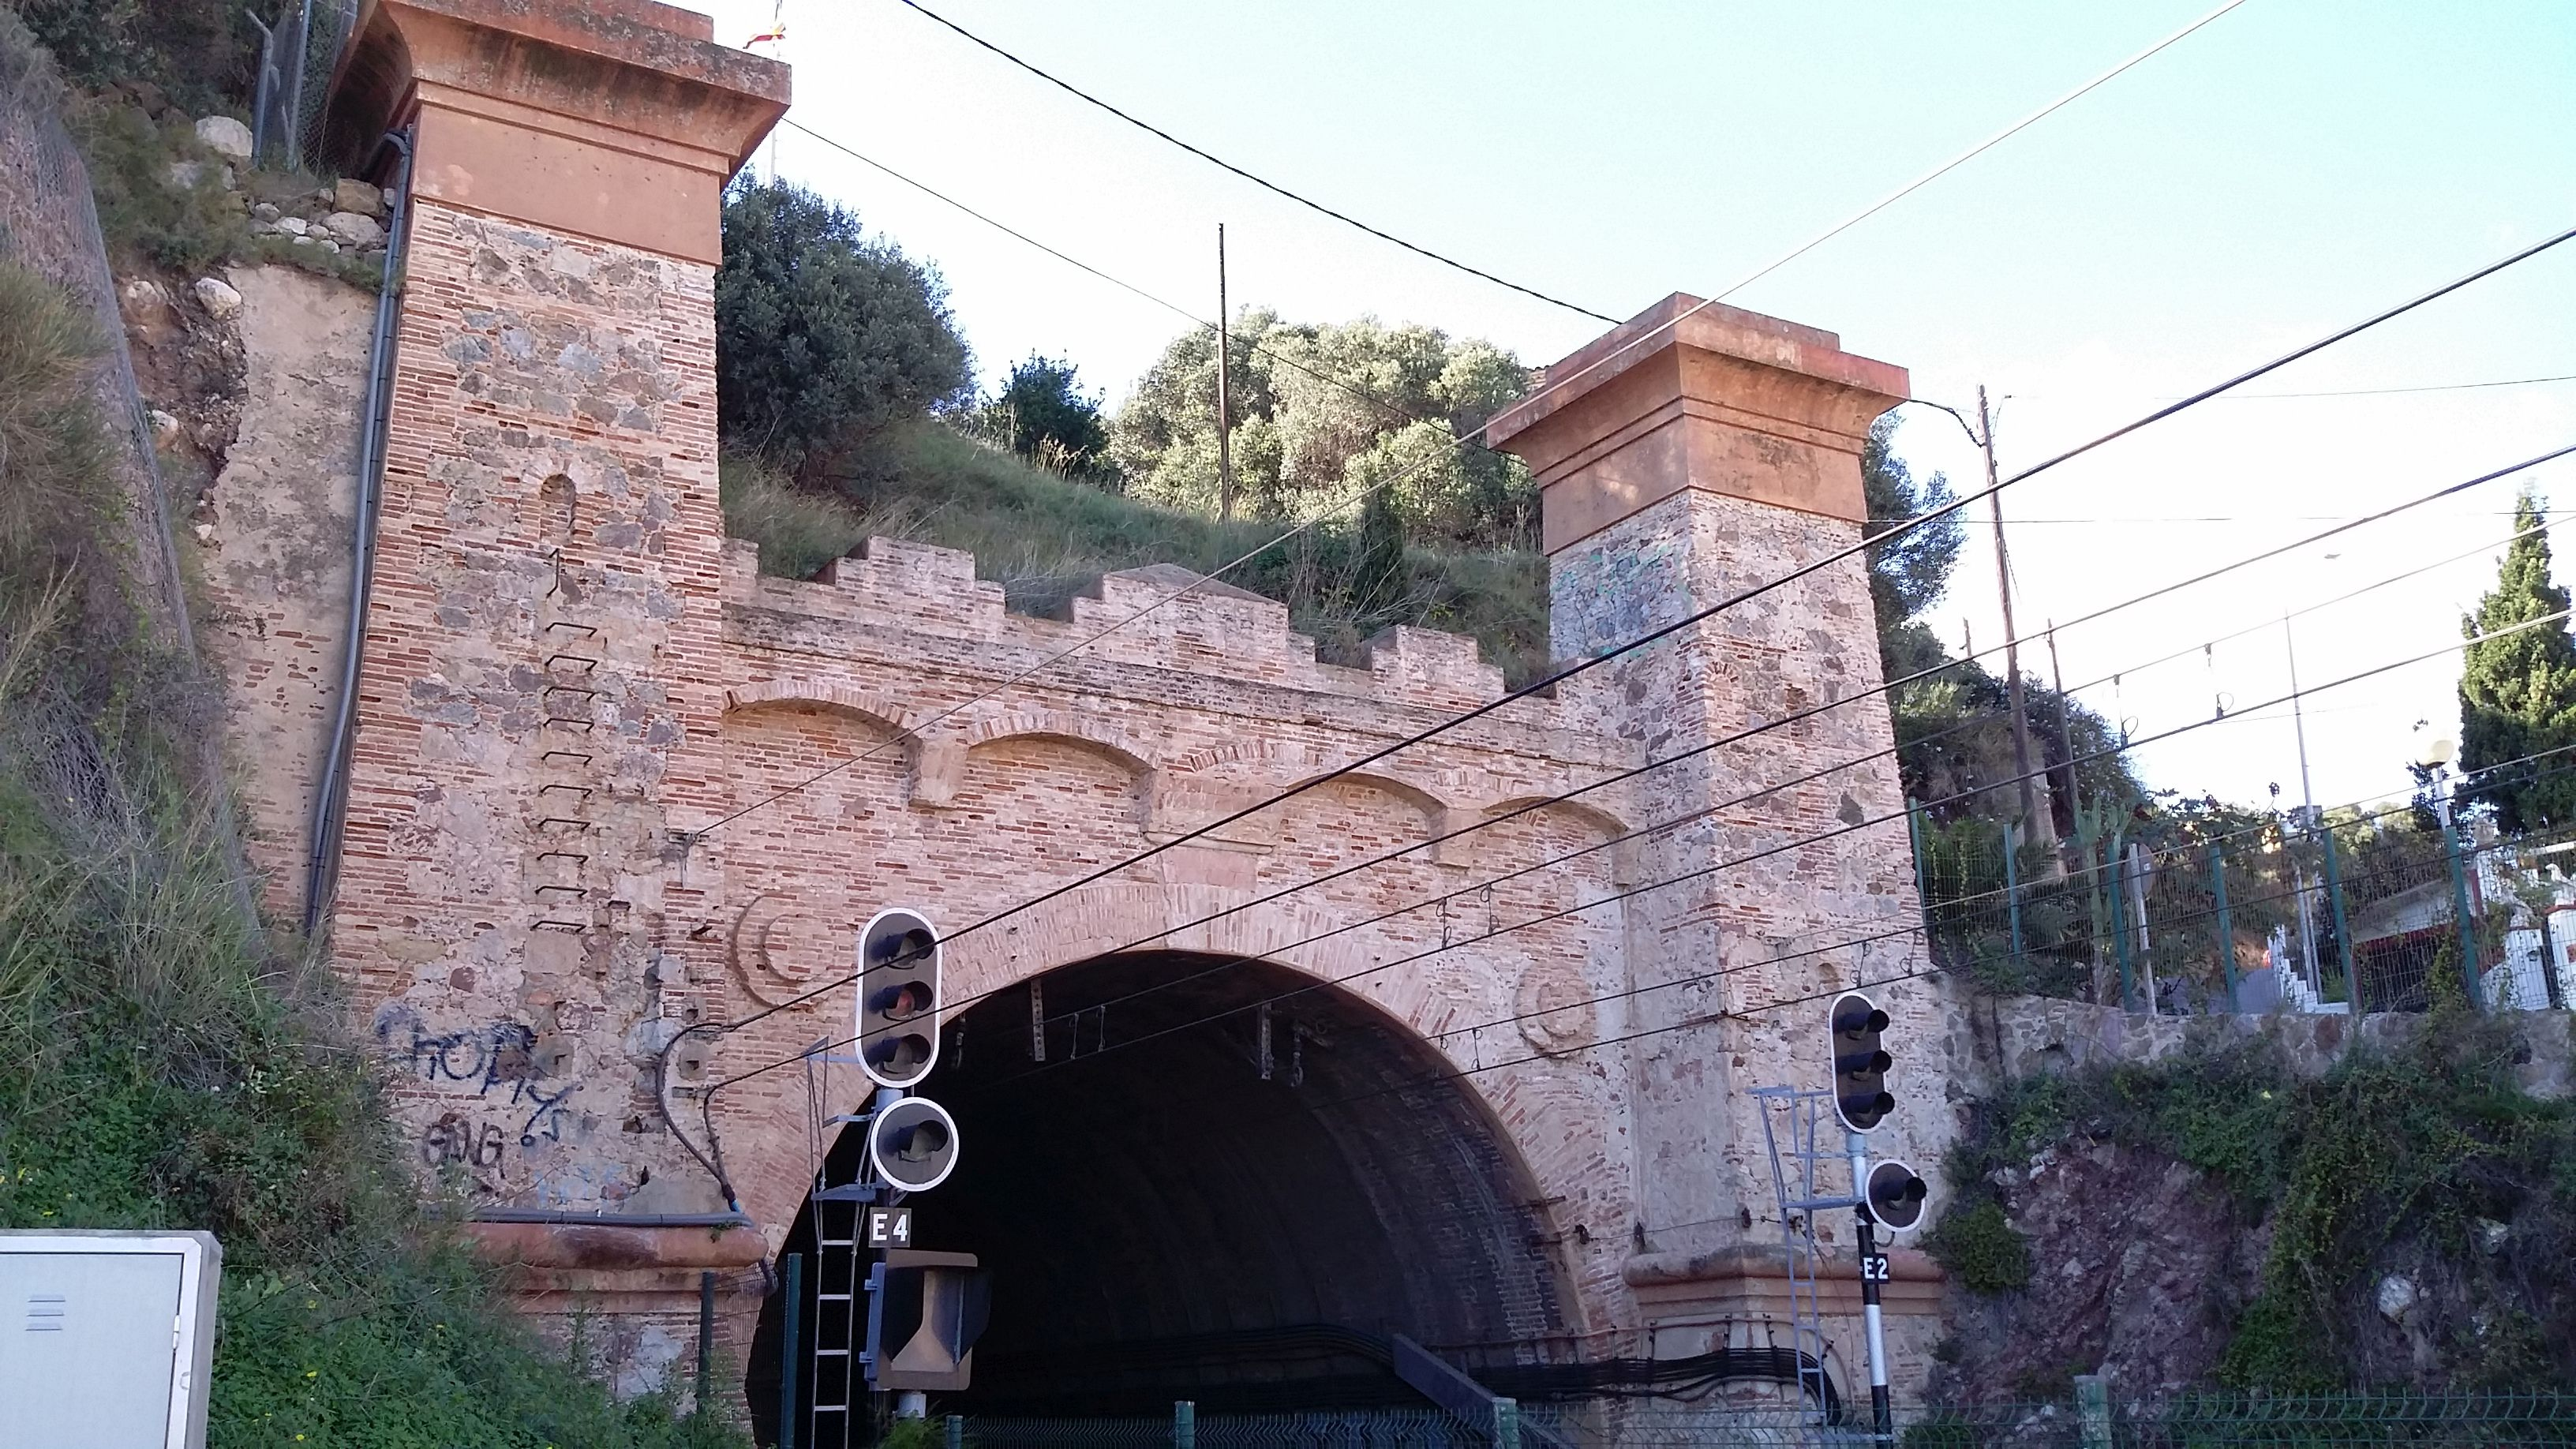 oldest train tunnel of Spain